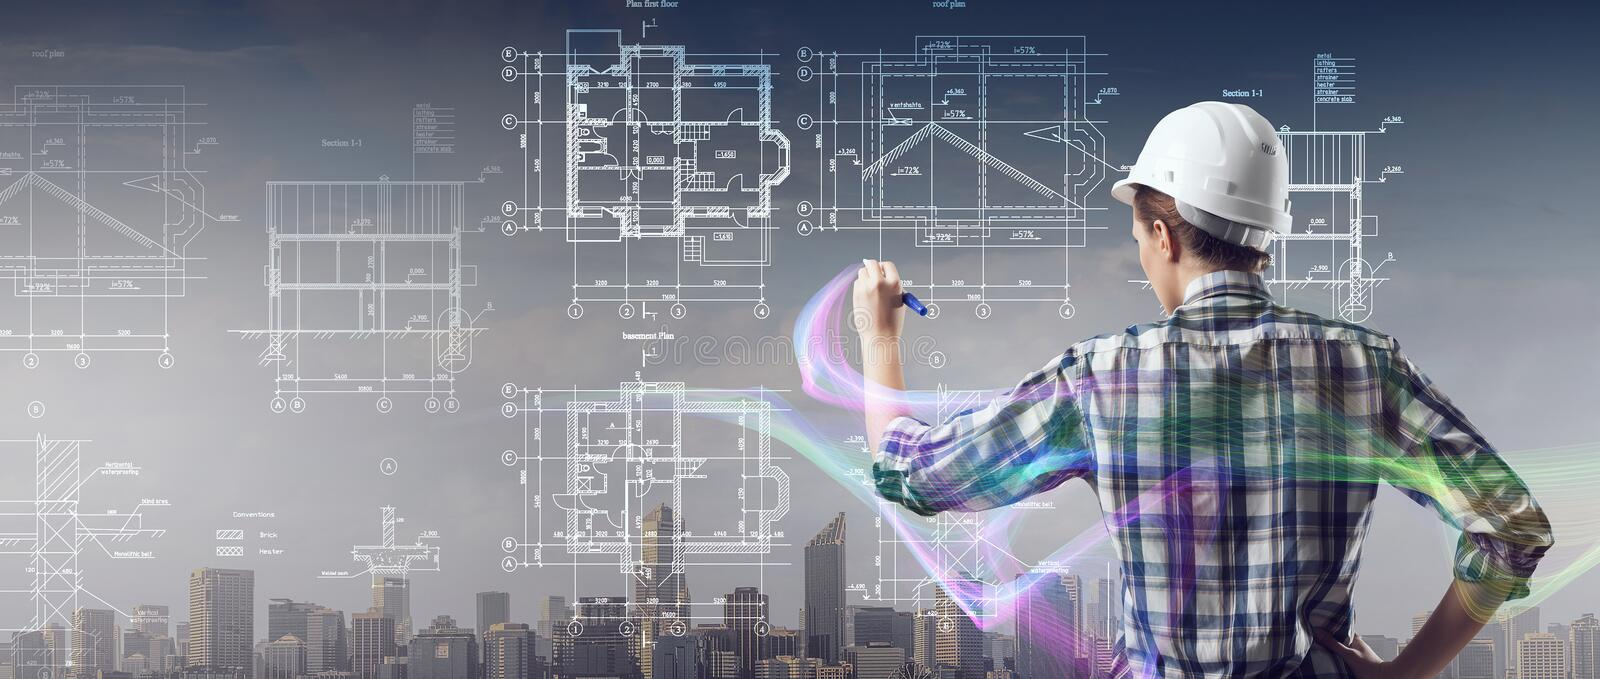 Engineer woman draw layout. Builder woman standing with back and drawing blueprints royalty free stock photography